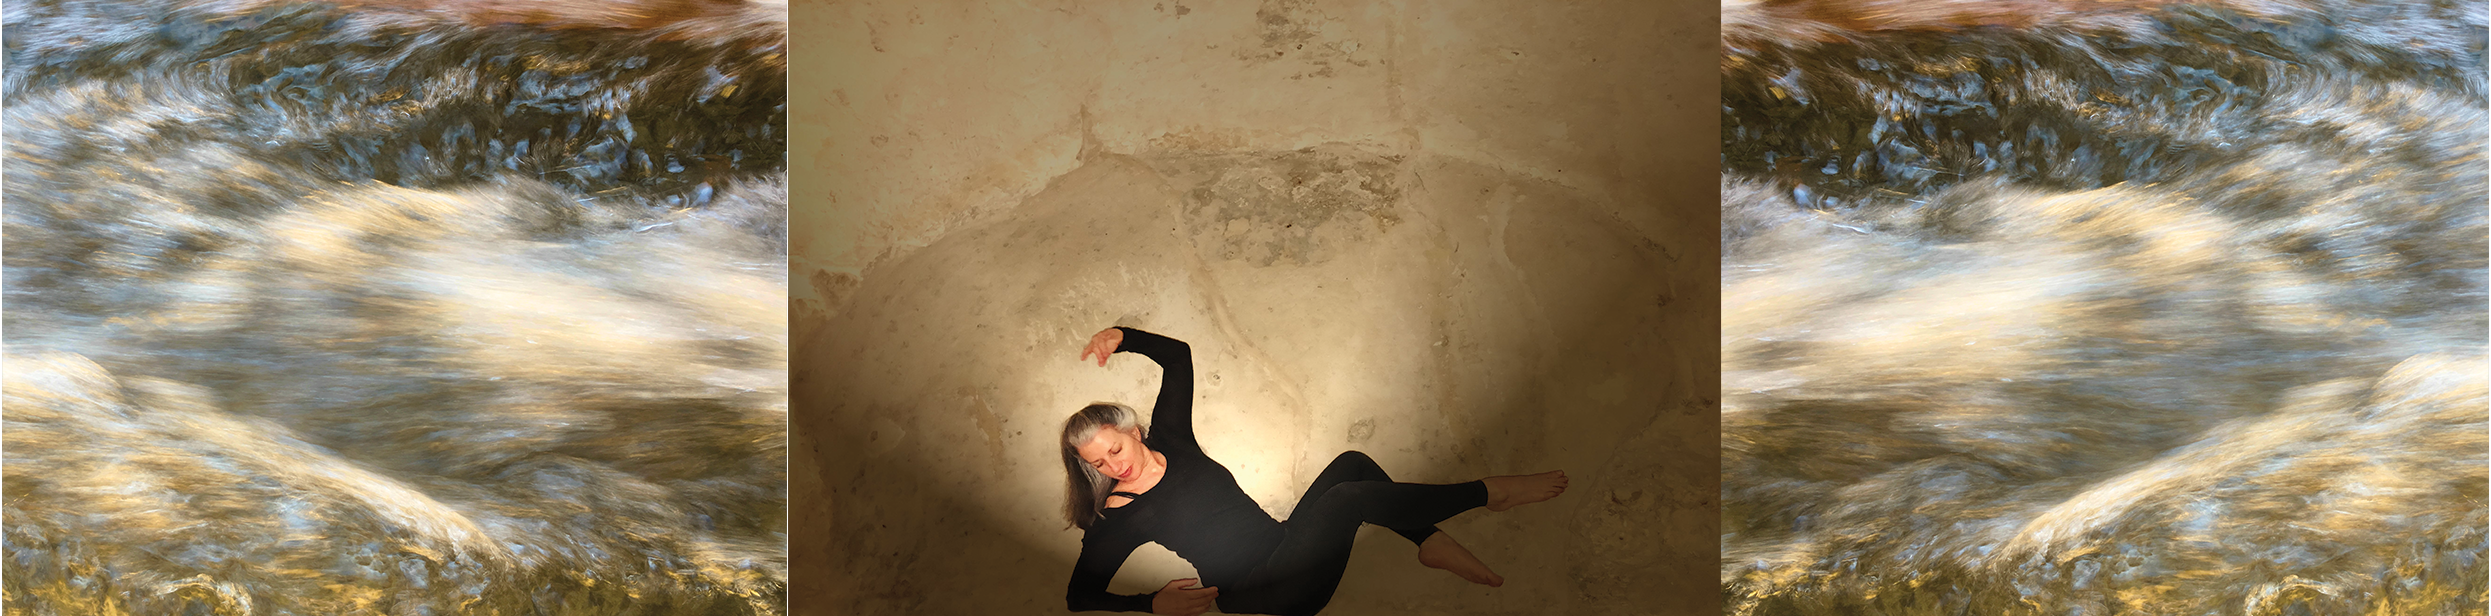 Photos: Elaine Colandrea in Matera & Streams Series by Prue Jeffries